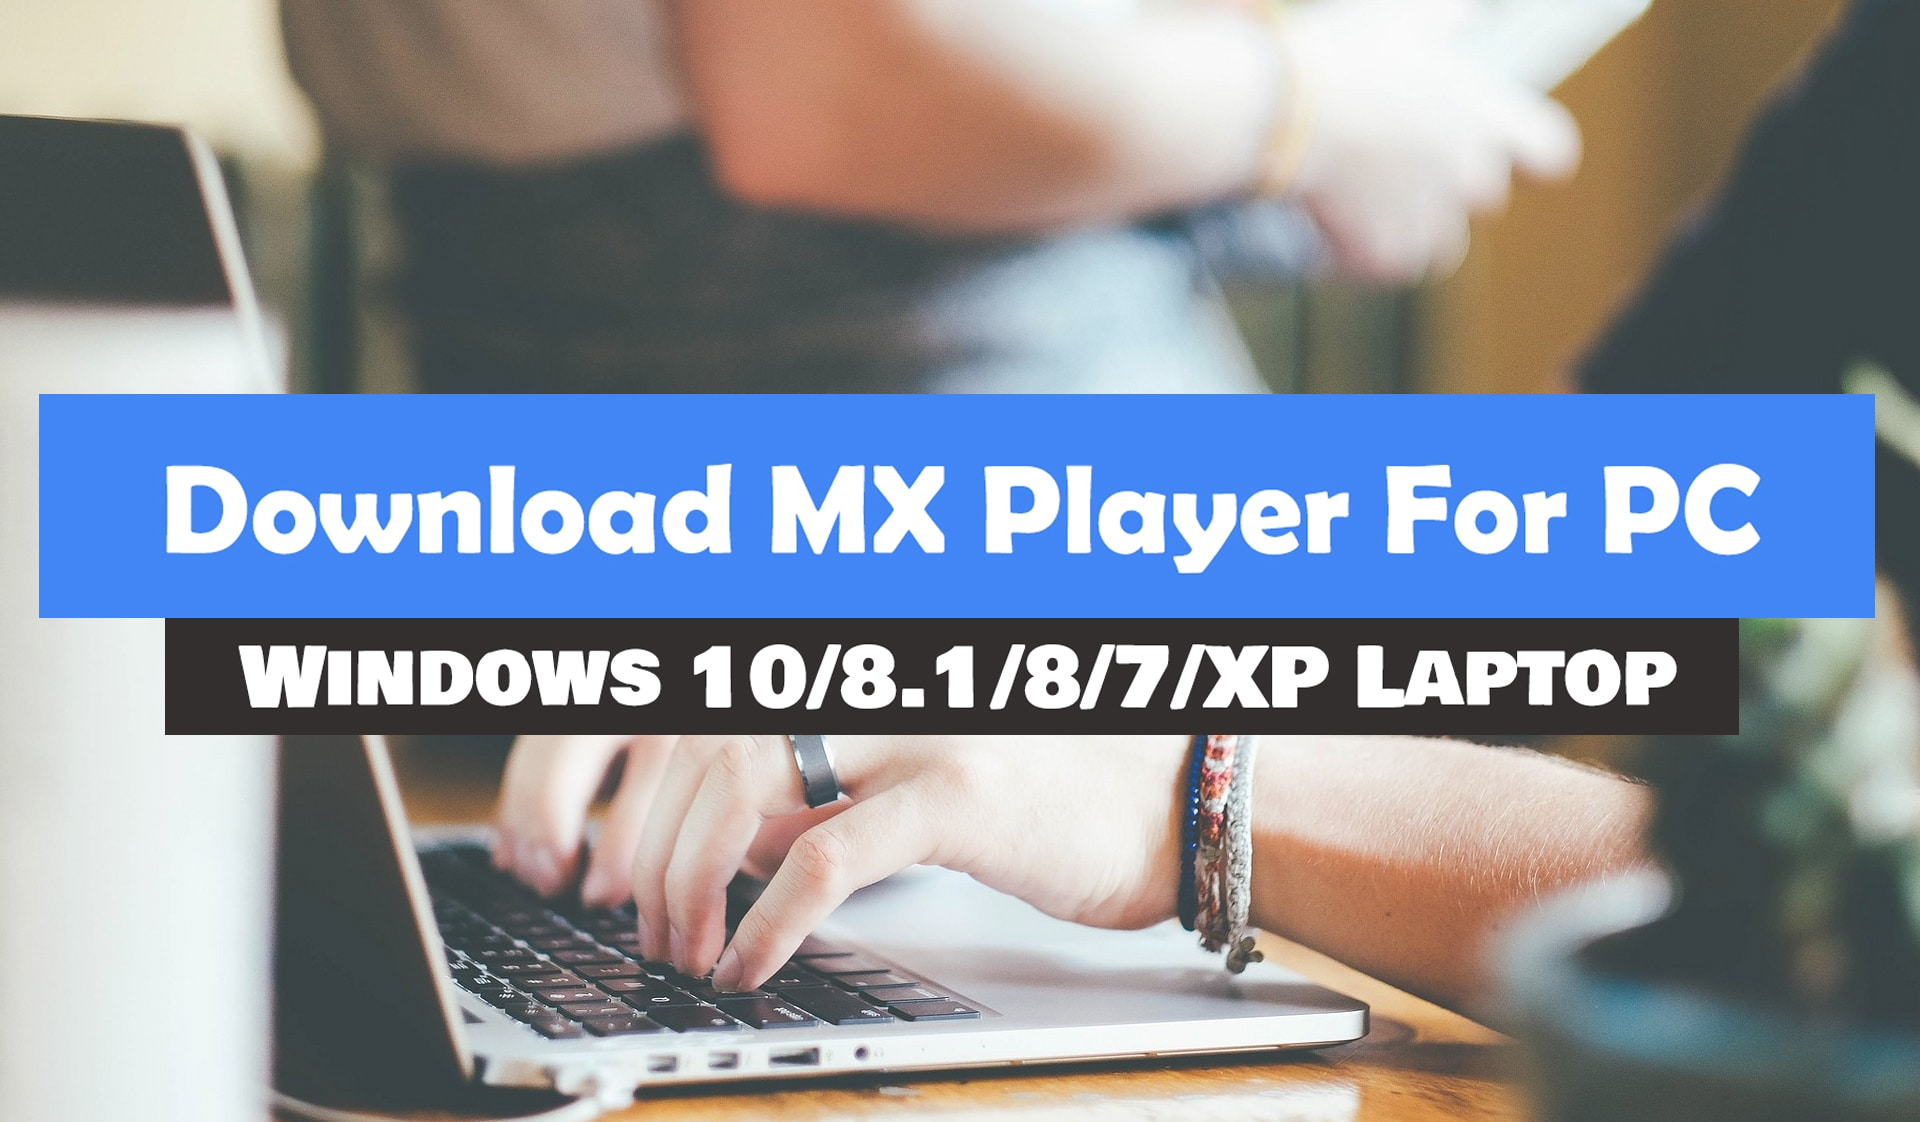 Download MX Player For PC [ Windows 10/8.1/8/7/XP ]